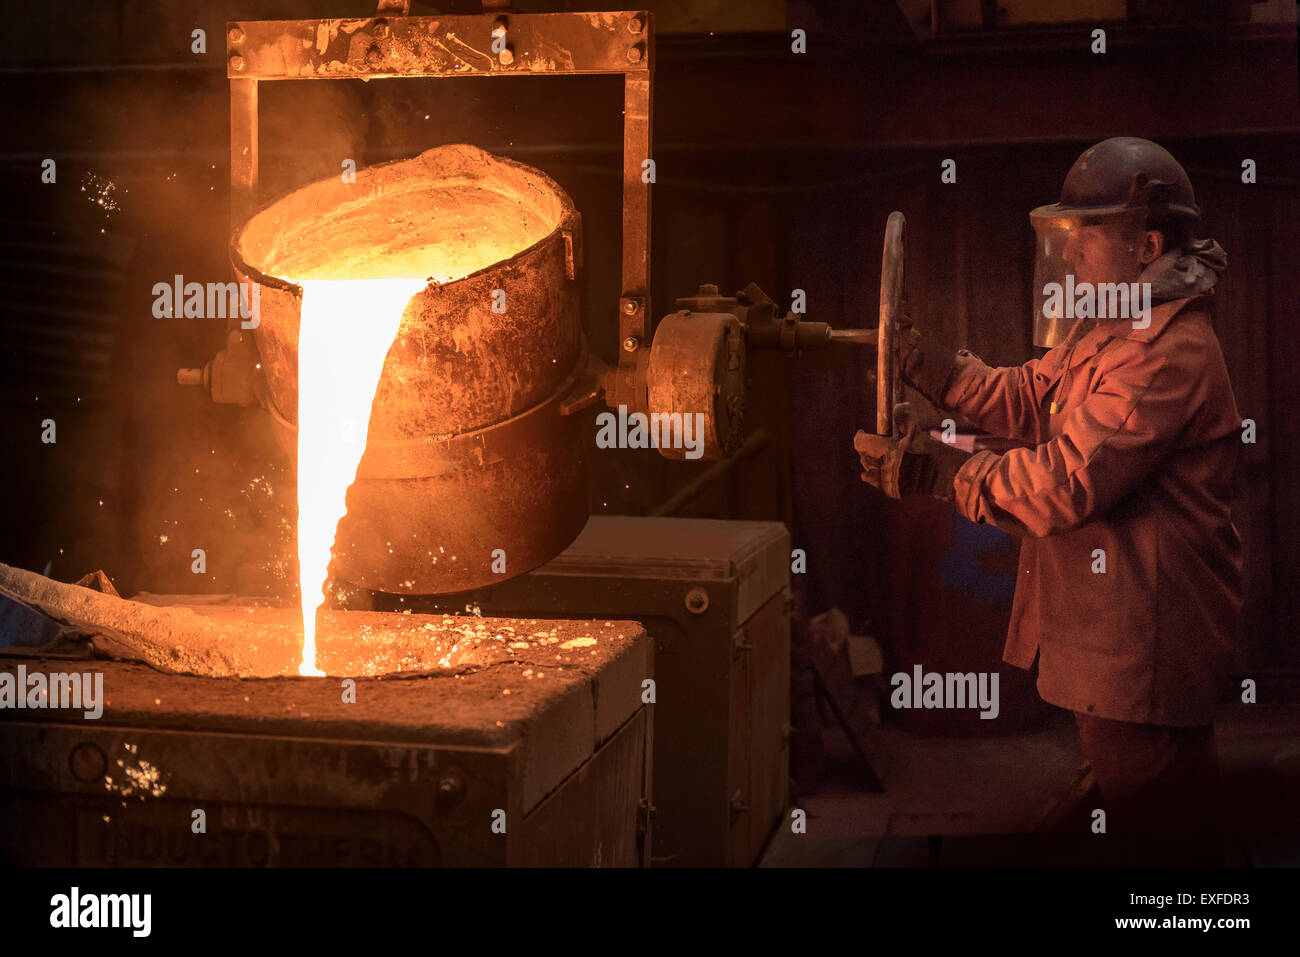 Worker pouring molten metal from flask in foundry - Stock Image